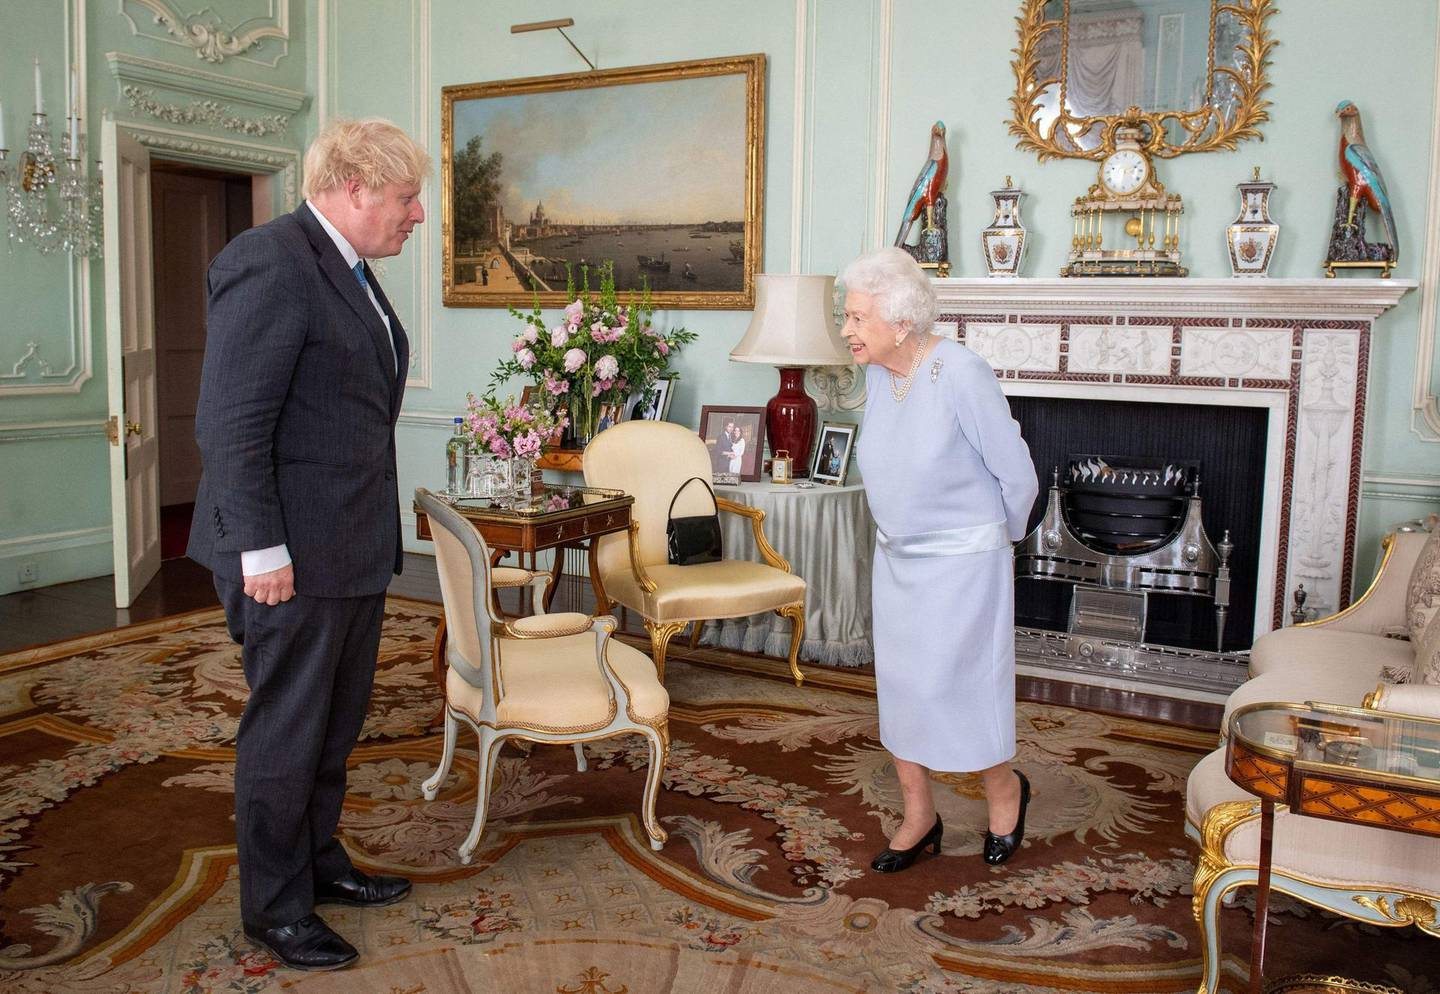 TOPSHOT - Britain's Queen Elizabeth II greets Britain's Prime Minister Boris Johnson during an audience at Buckingham Palace in central London on June 23, 2021, the Queen's first in-person weekly audience with the Prime Minister since the start of the coronavirus pandemic. / AFP / POOL / Dominic Lipinski